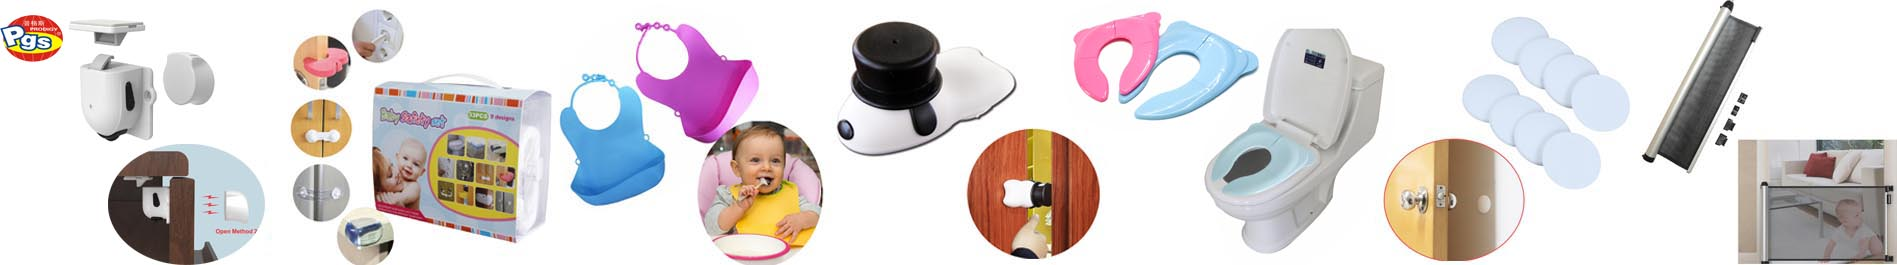 Baby safety electrical outlet cover plug protectors